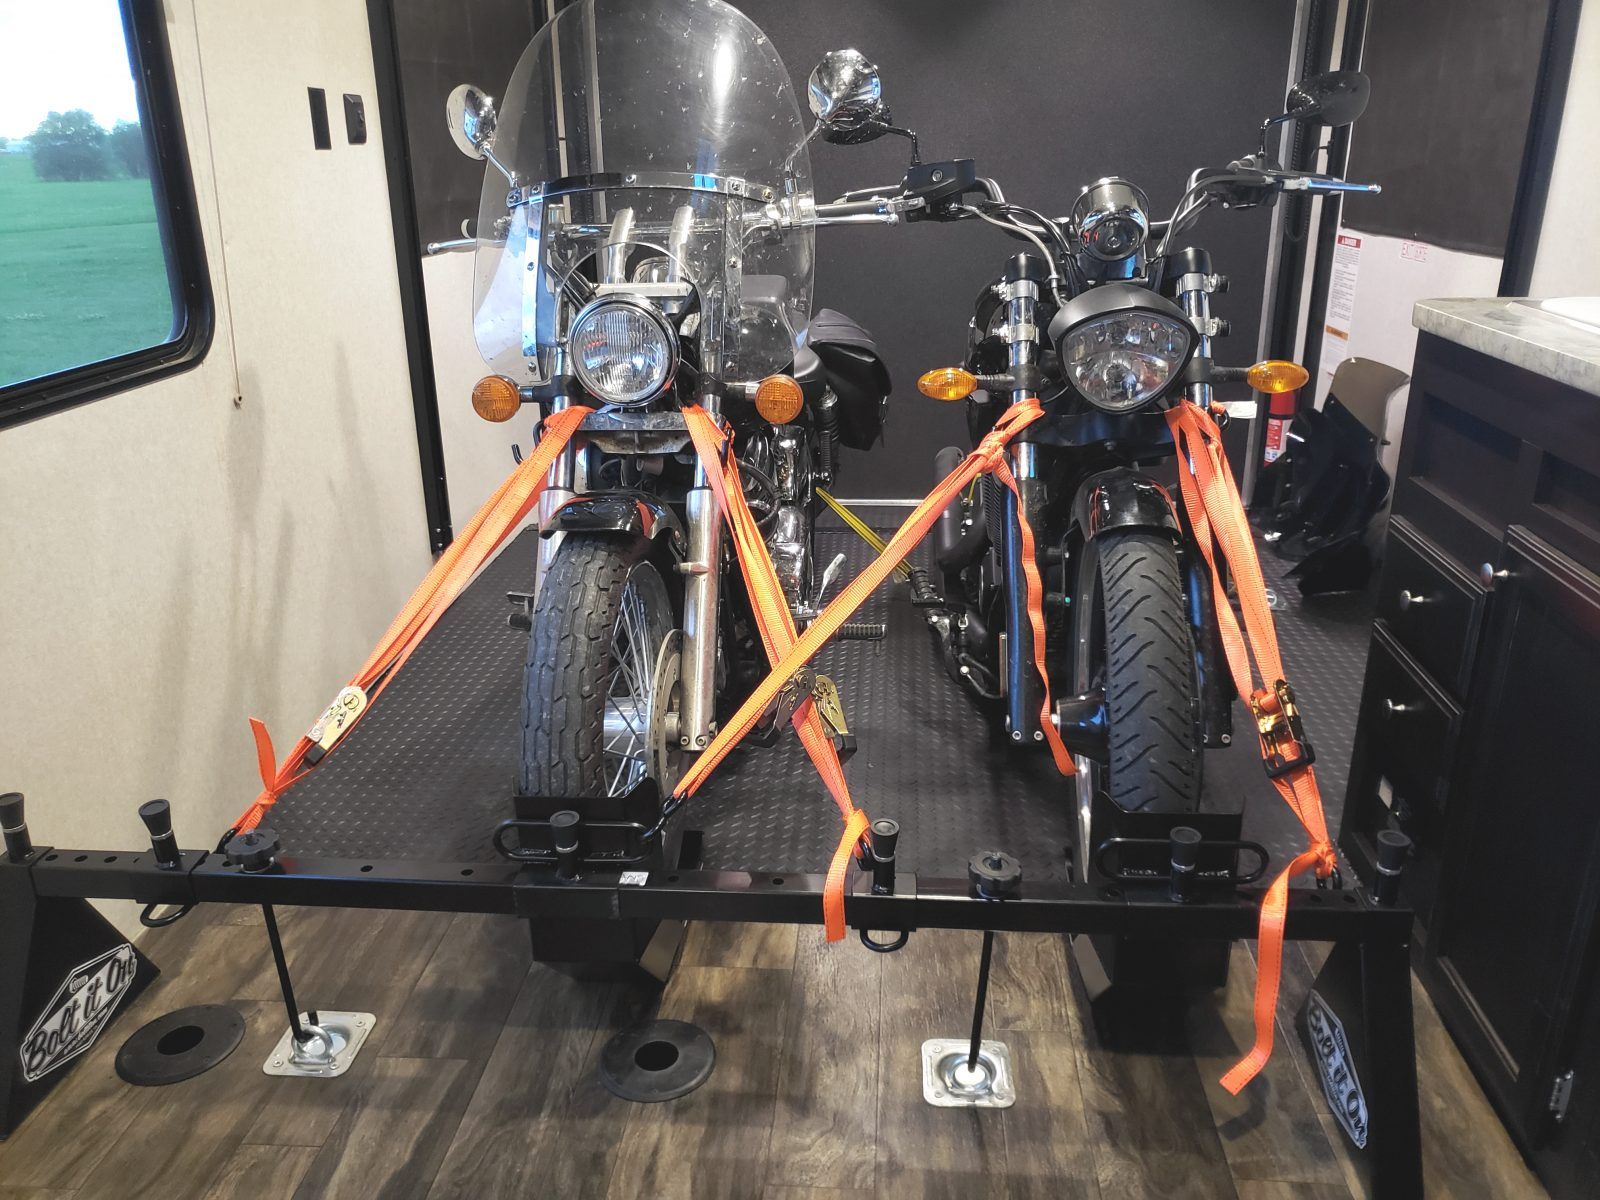 Two Cruiser Style Street Bikes on a Bolt It On Tie Down System